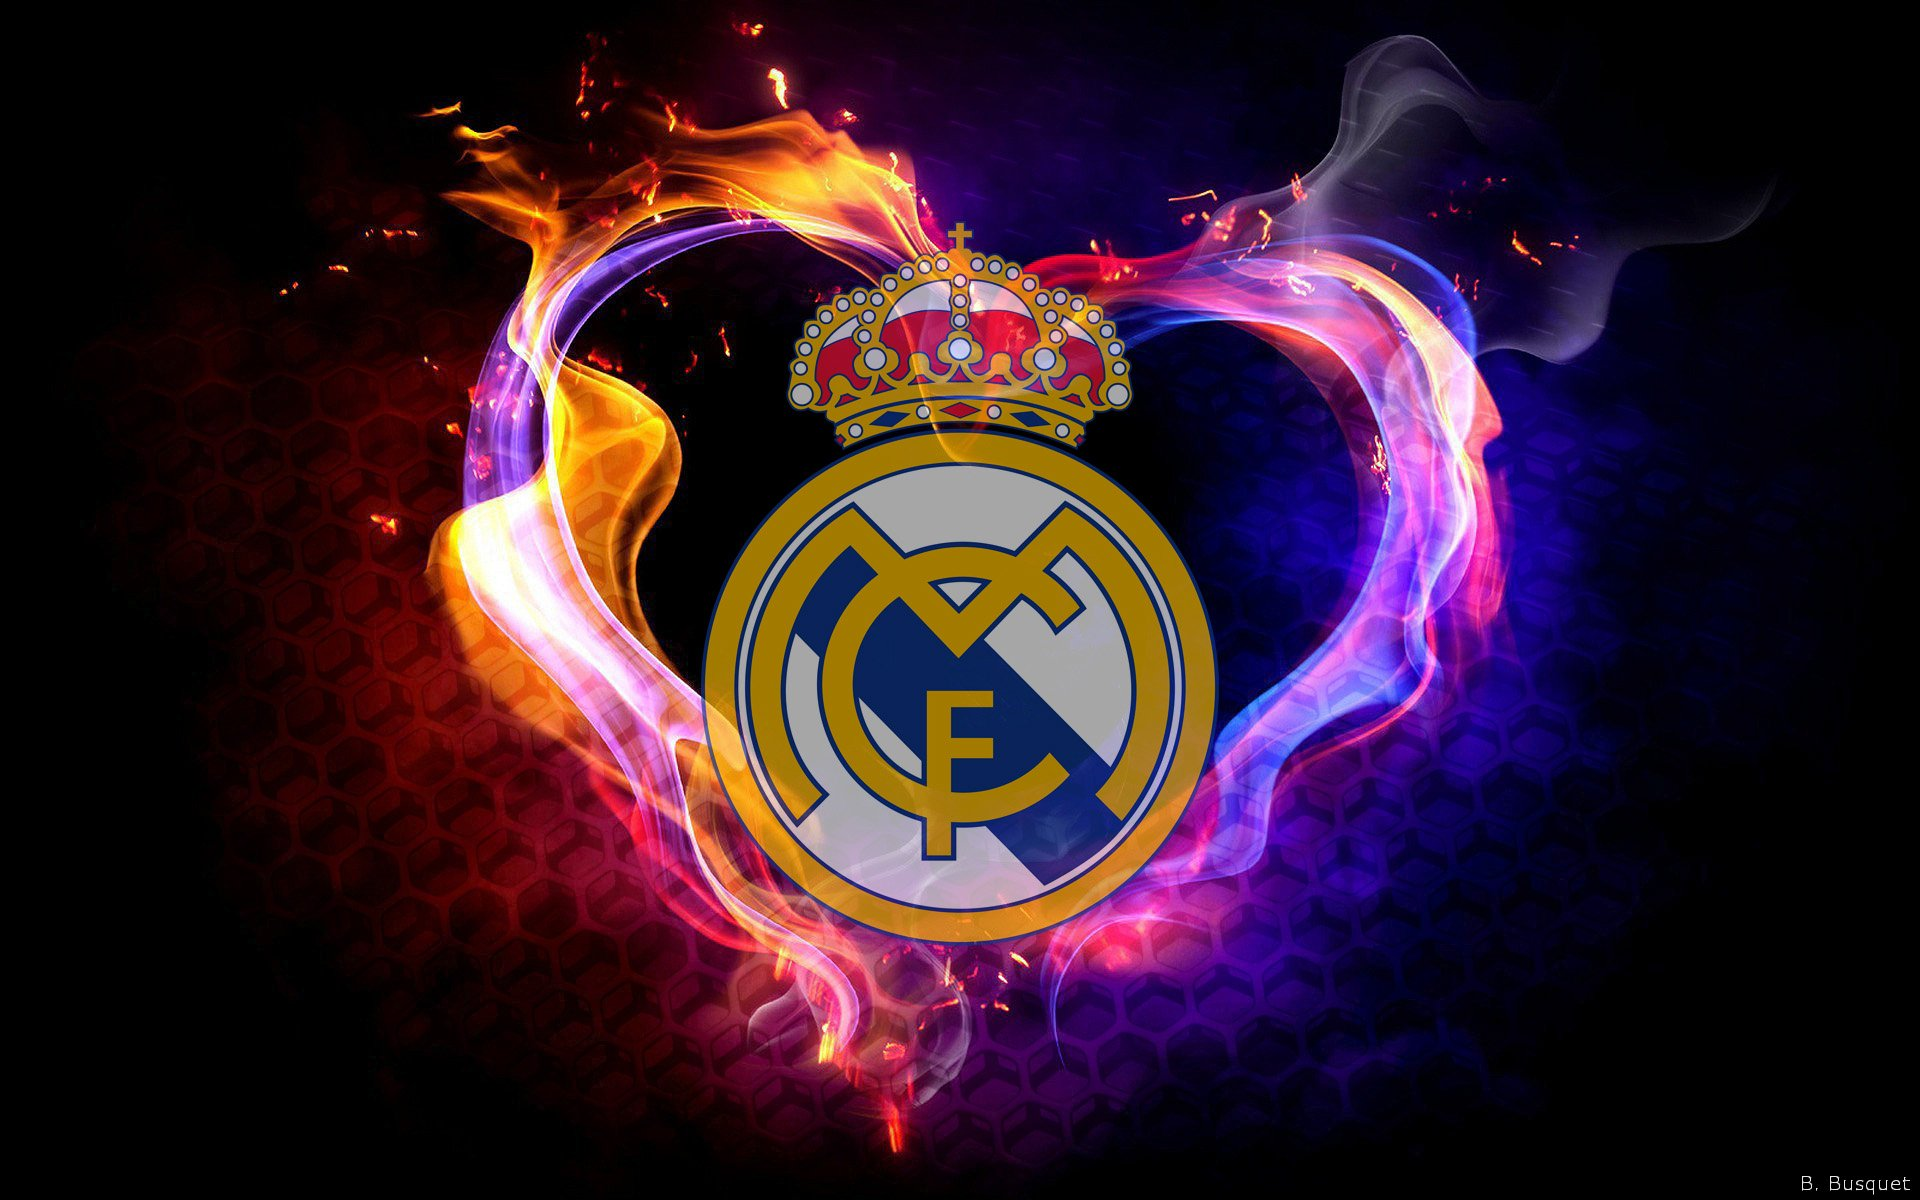 25 real madrid cf hd wallpapers background images wallpaper hd wallpaper background image id770521 1920x1200 sports real madrid cf voltagebd Images